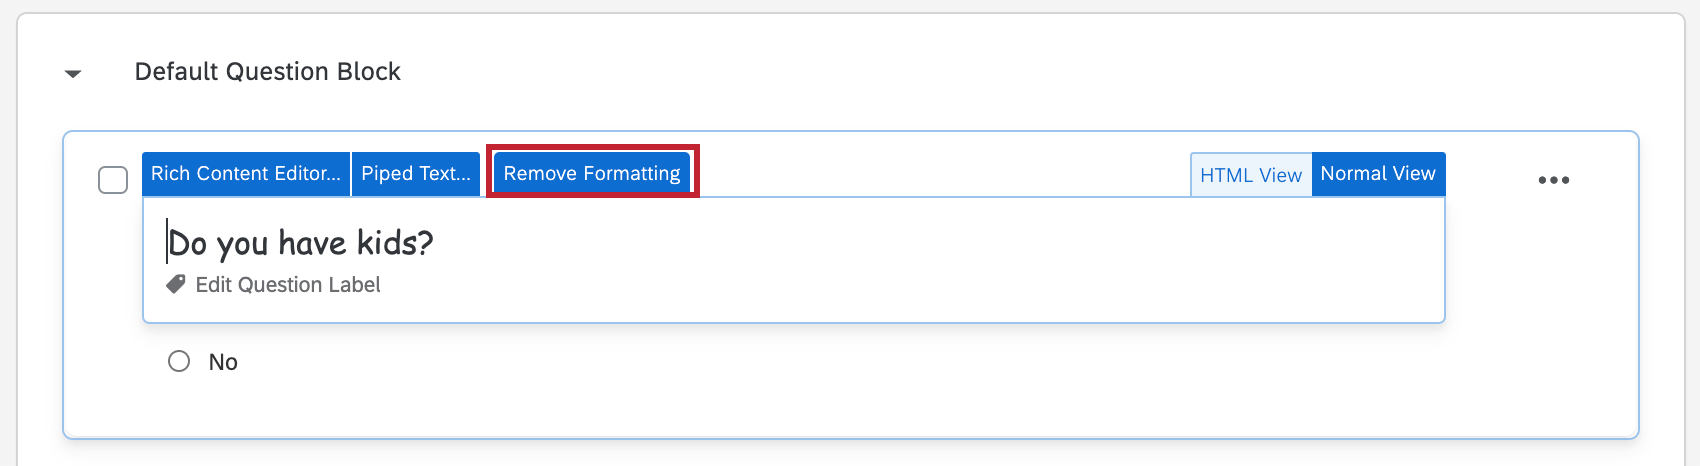 Remove Formatting option in the question